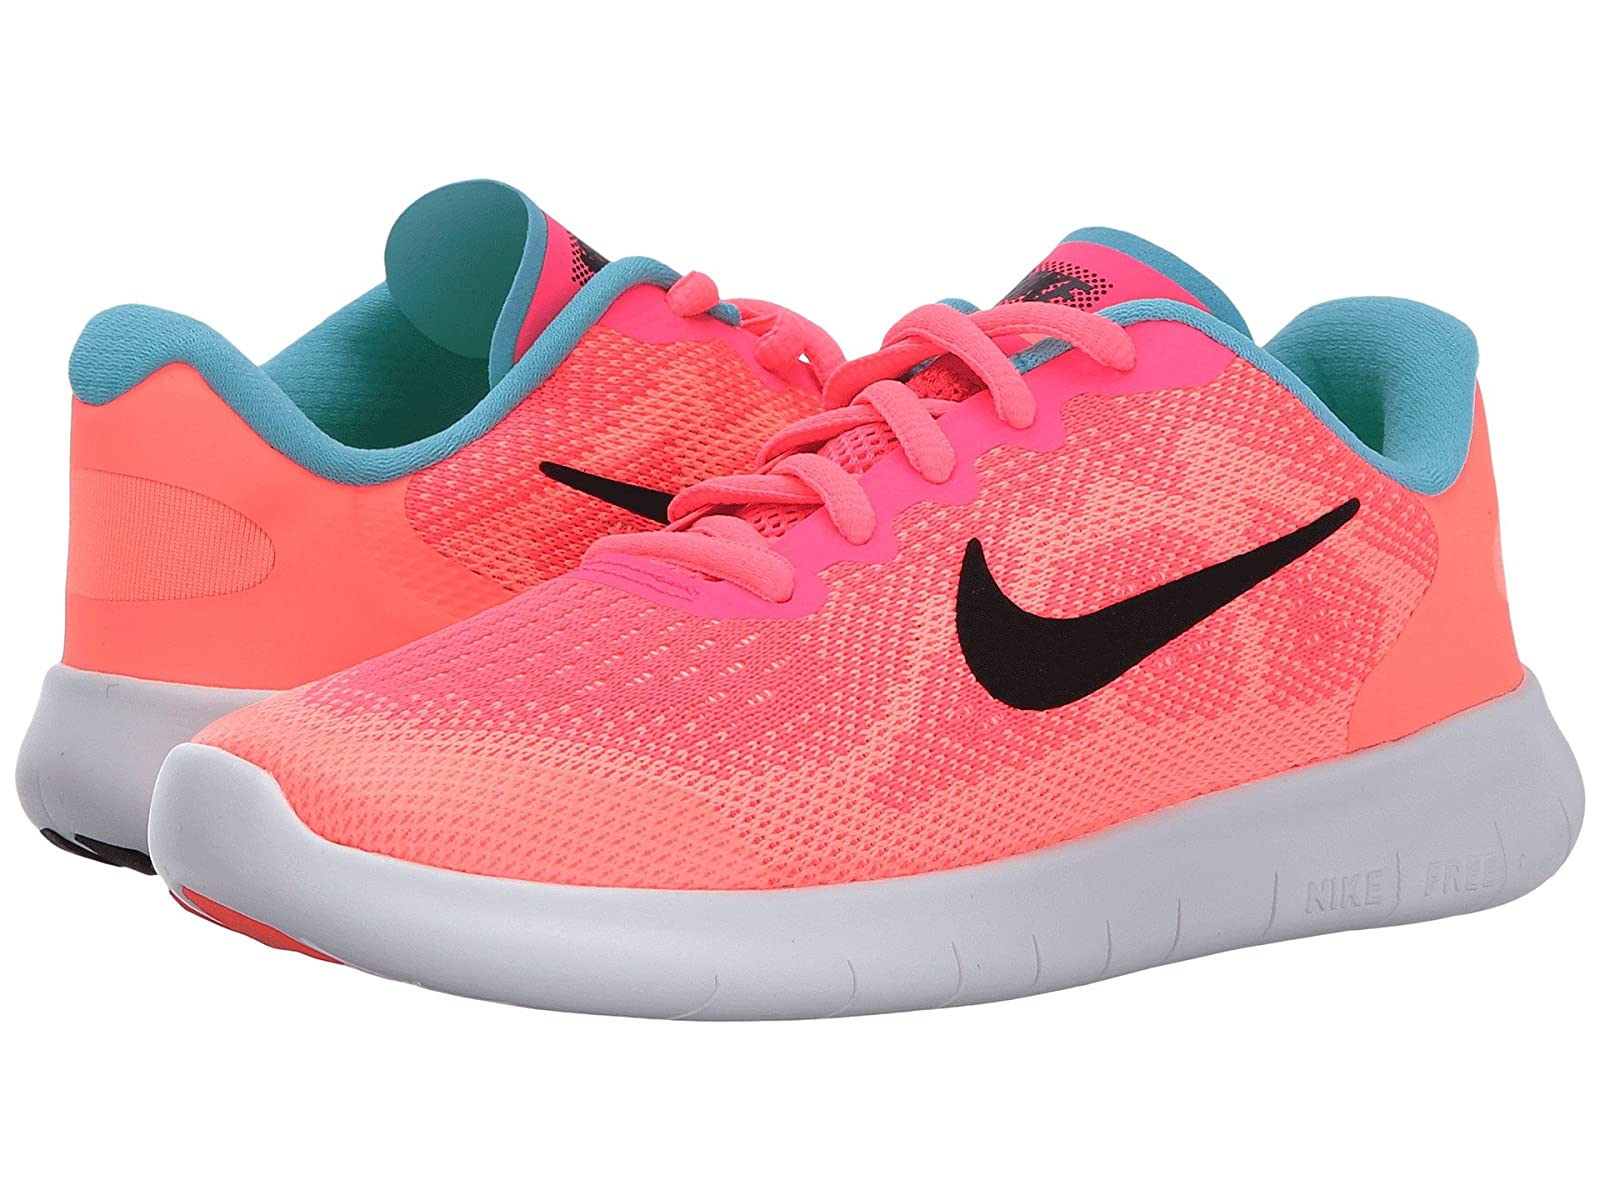 Nike Kids Free RN (Little Kid)Cheap and distinctive eye-catching shoes